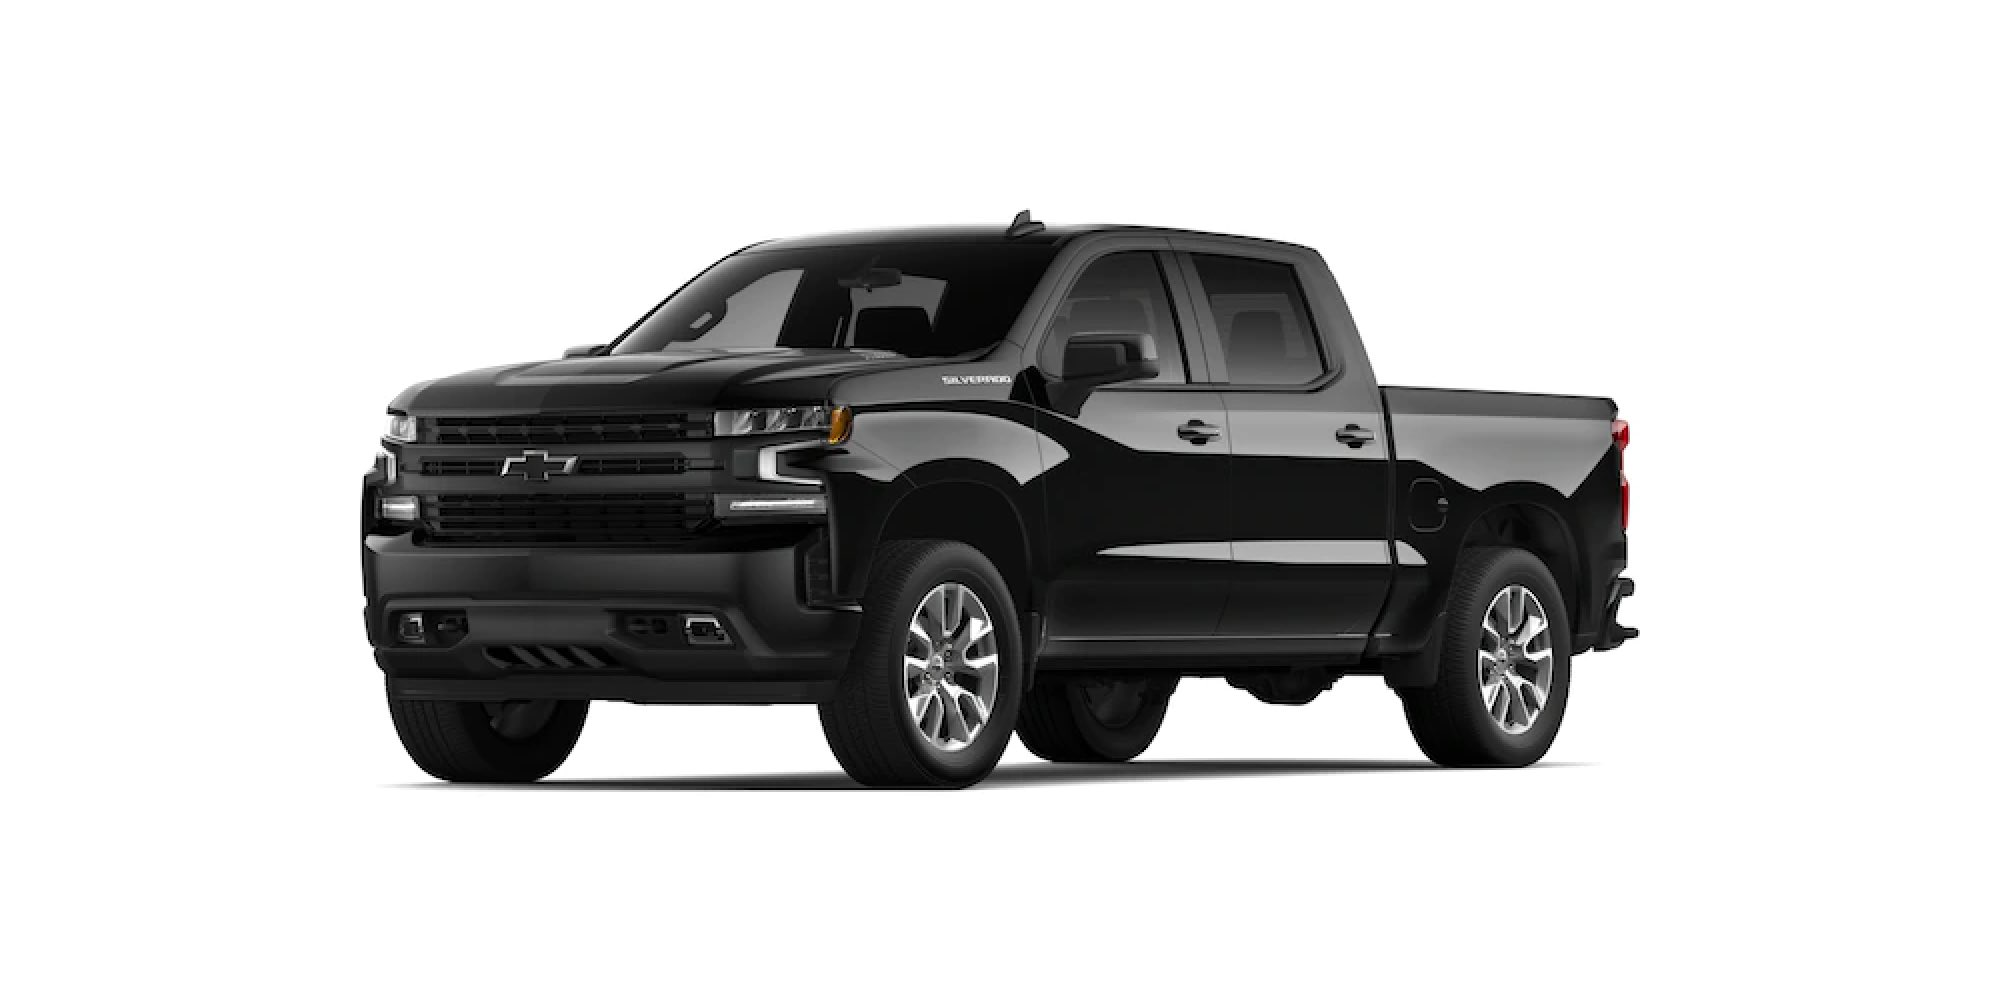 2021 Chevy Silverado 1500 in MOSAIC BLACK METALLIC